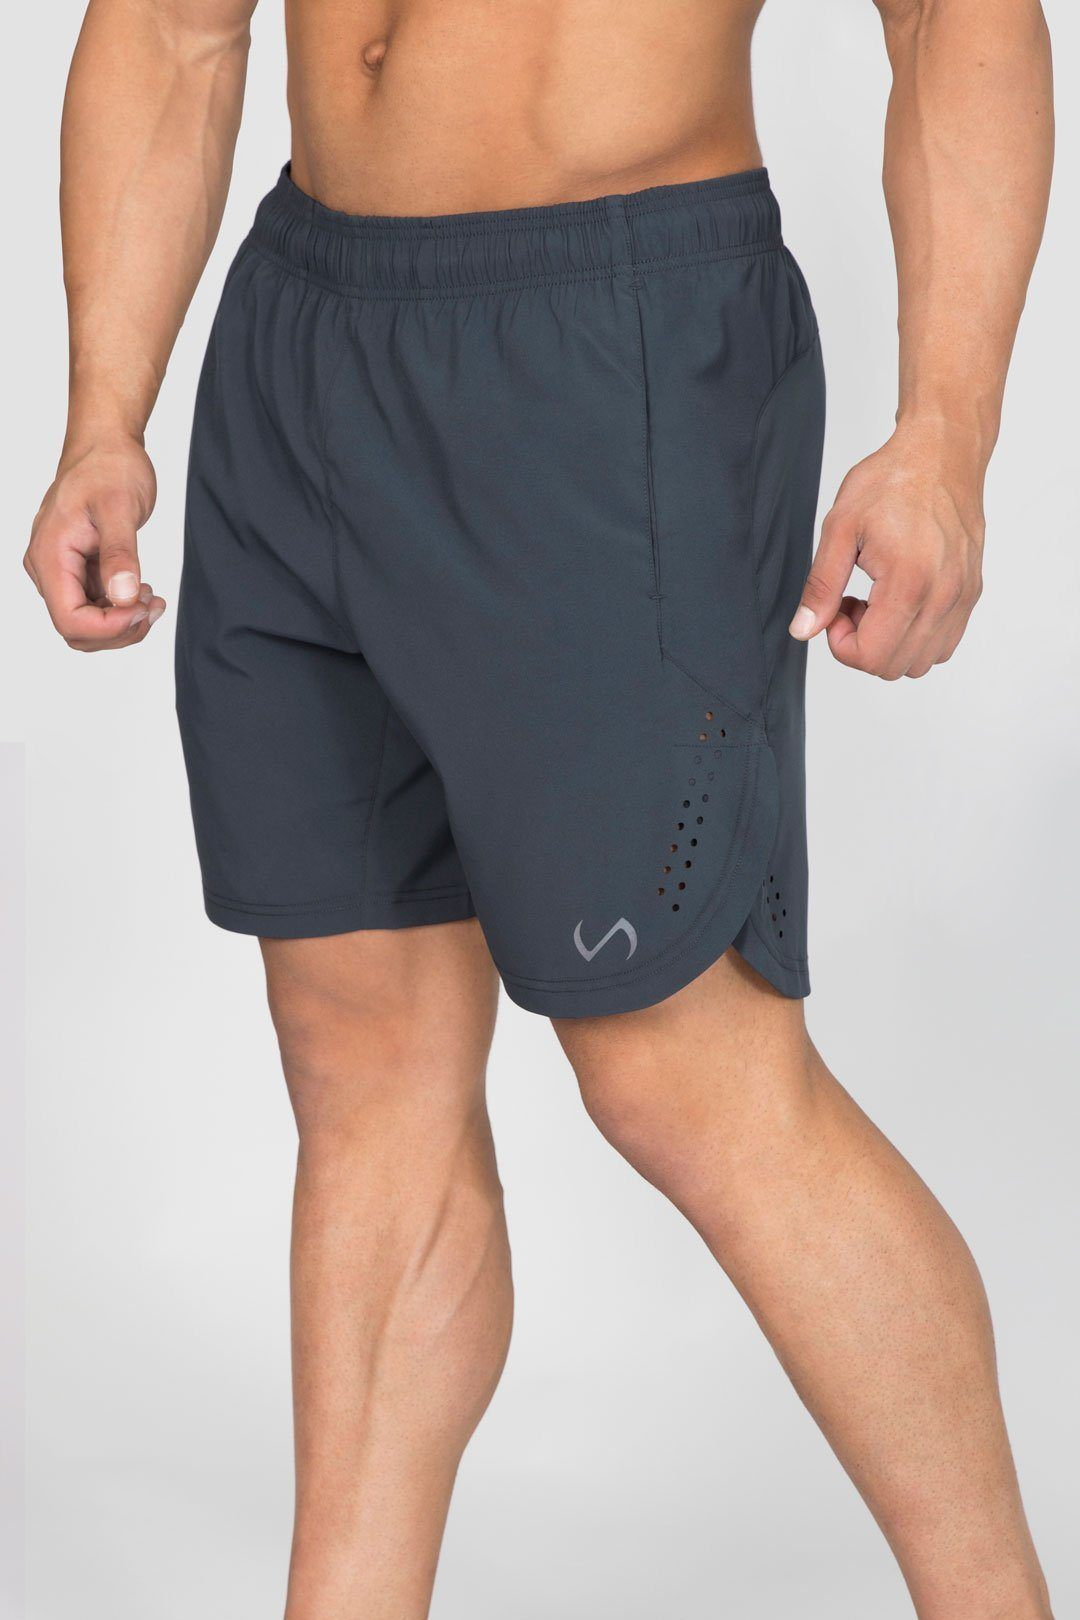 TLF Element Shorts - Shorts - TLF Apparel | Take Life Further